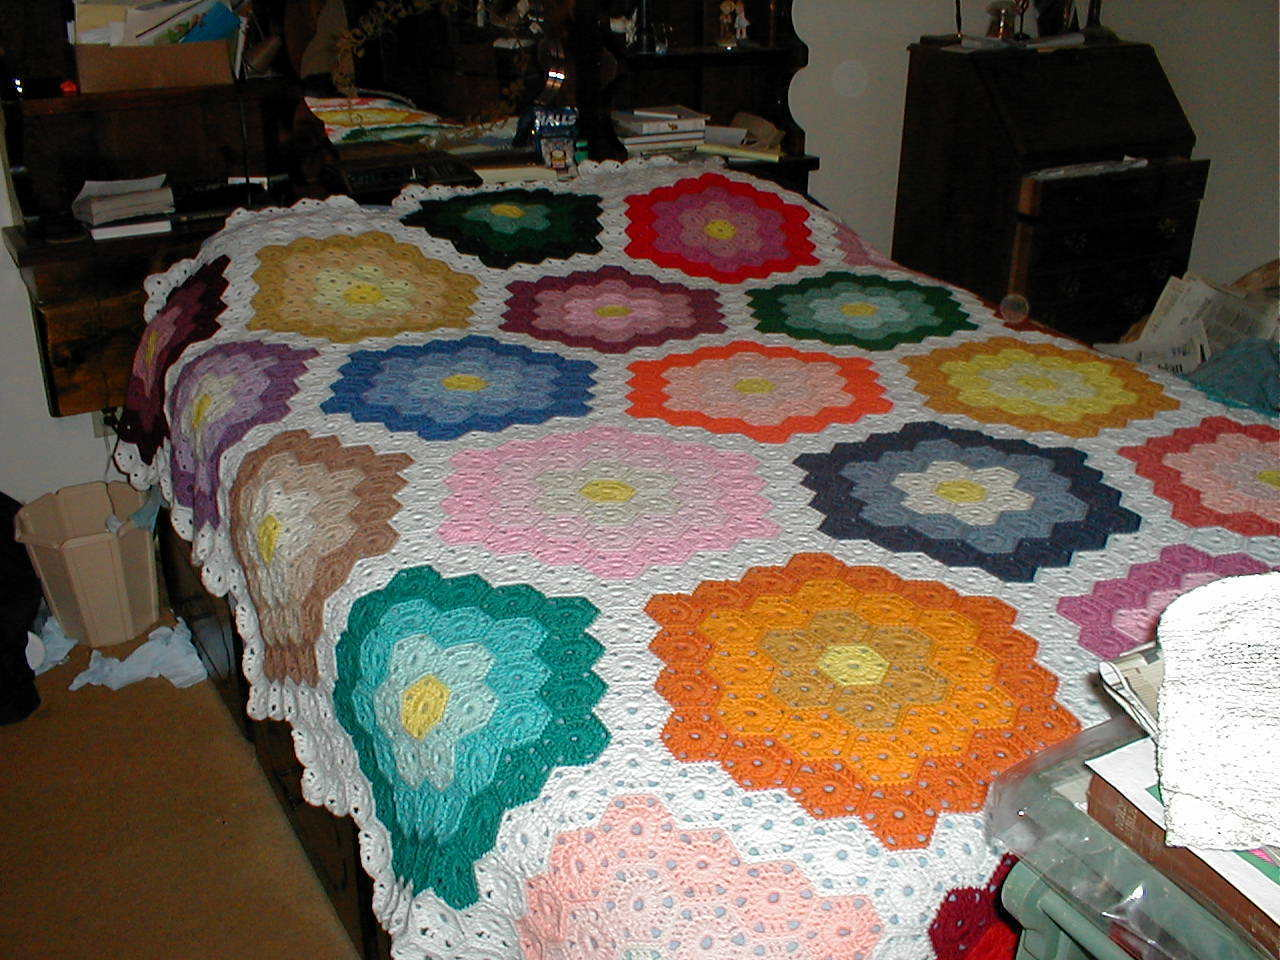 Mosaic Crochet Afghan Pattern : Handmade Crochet Afghan; Queen-Size; Mosaic Pattern - Other